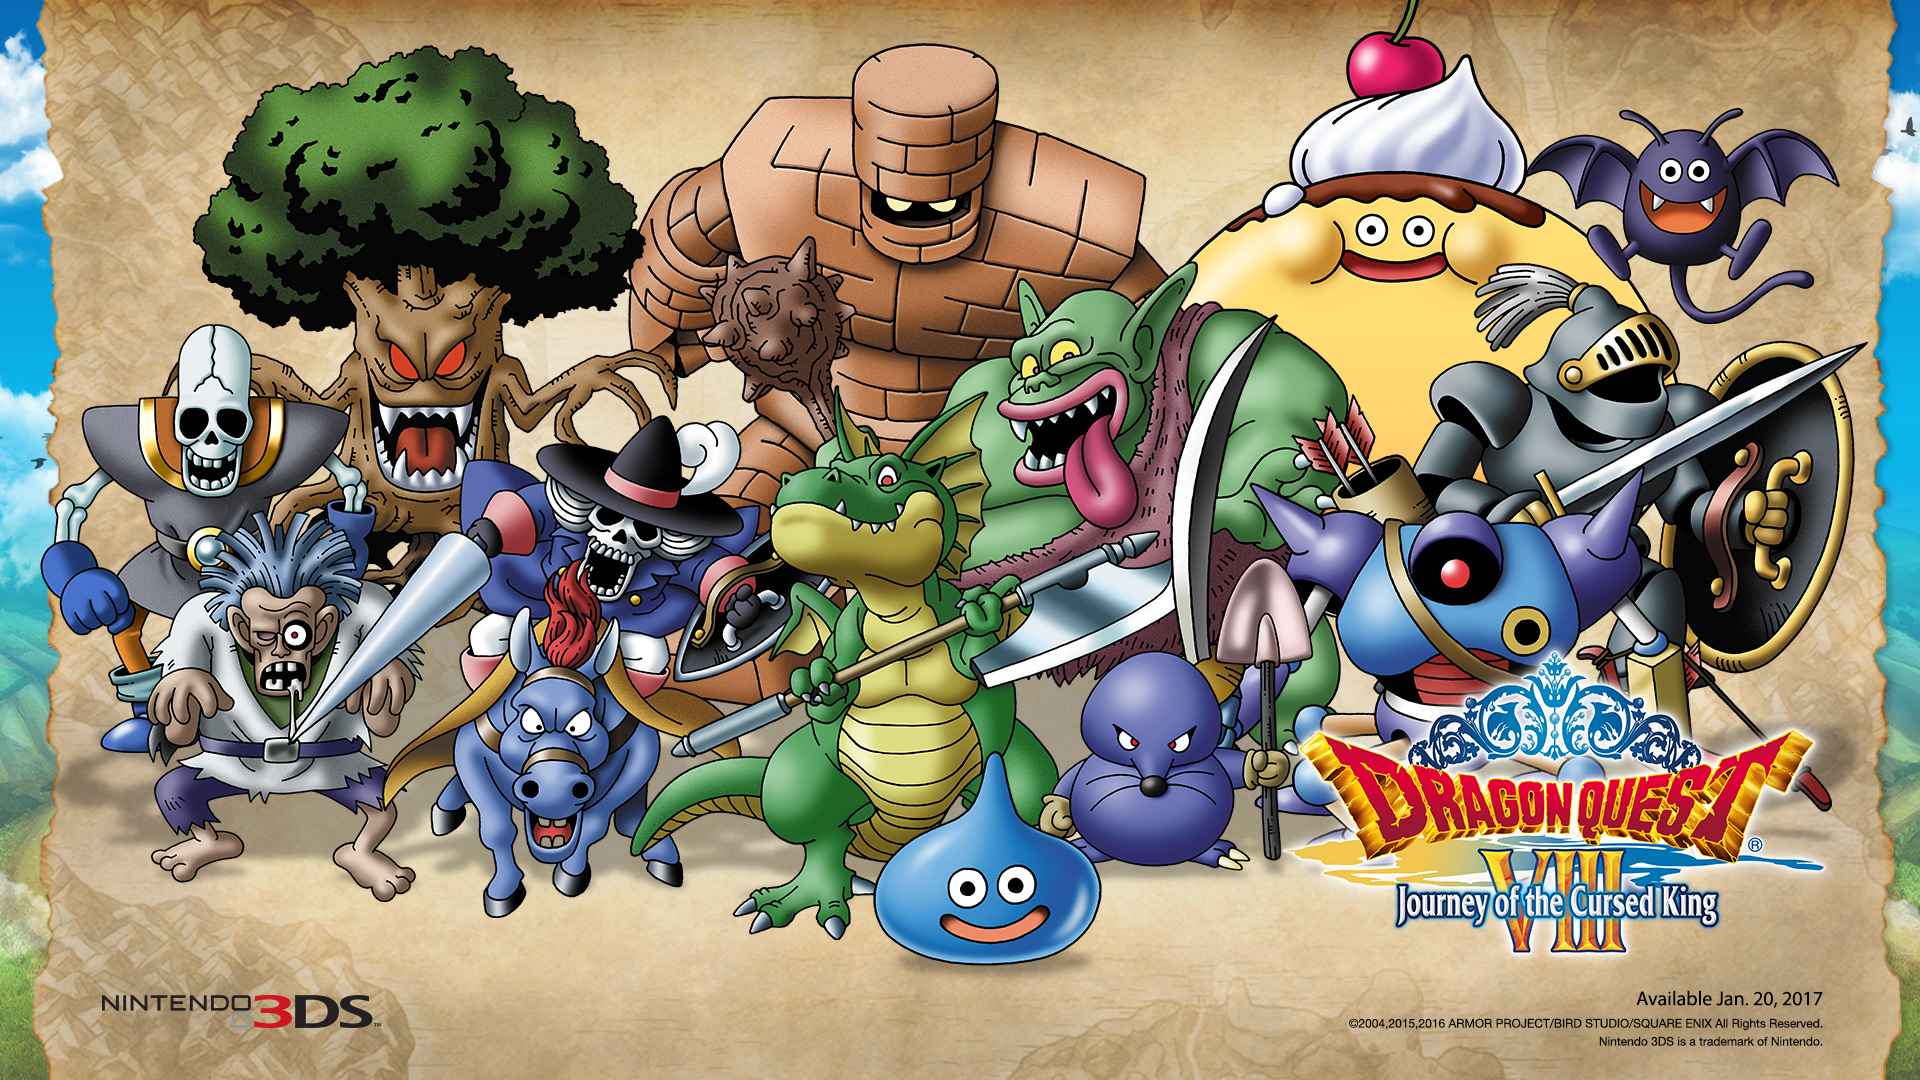 Dragon Quest Slime Wallpaper Posted By Ethan Thompson